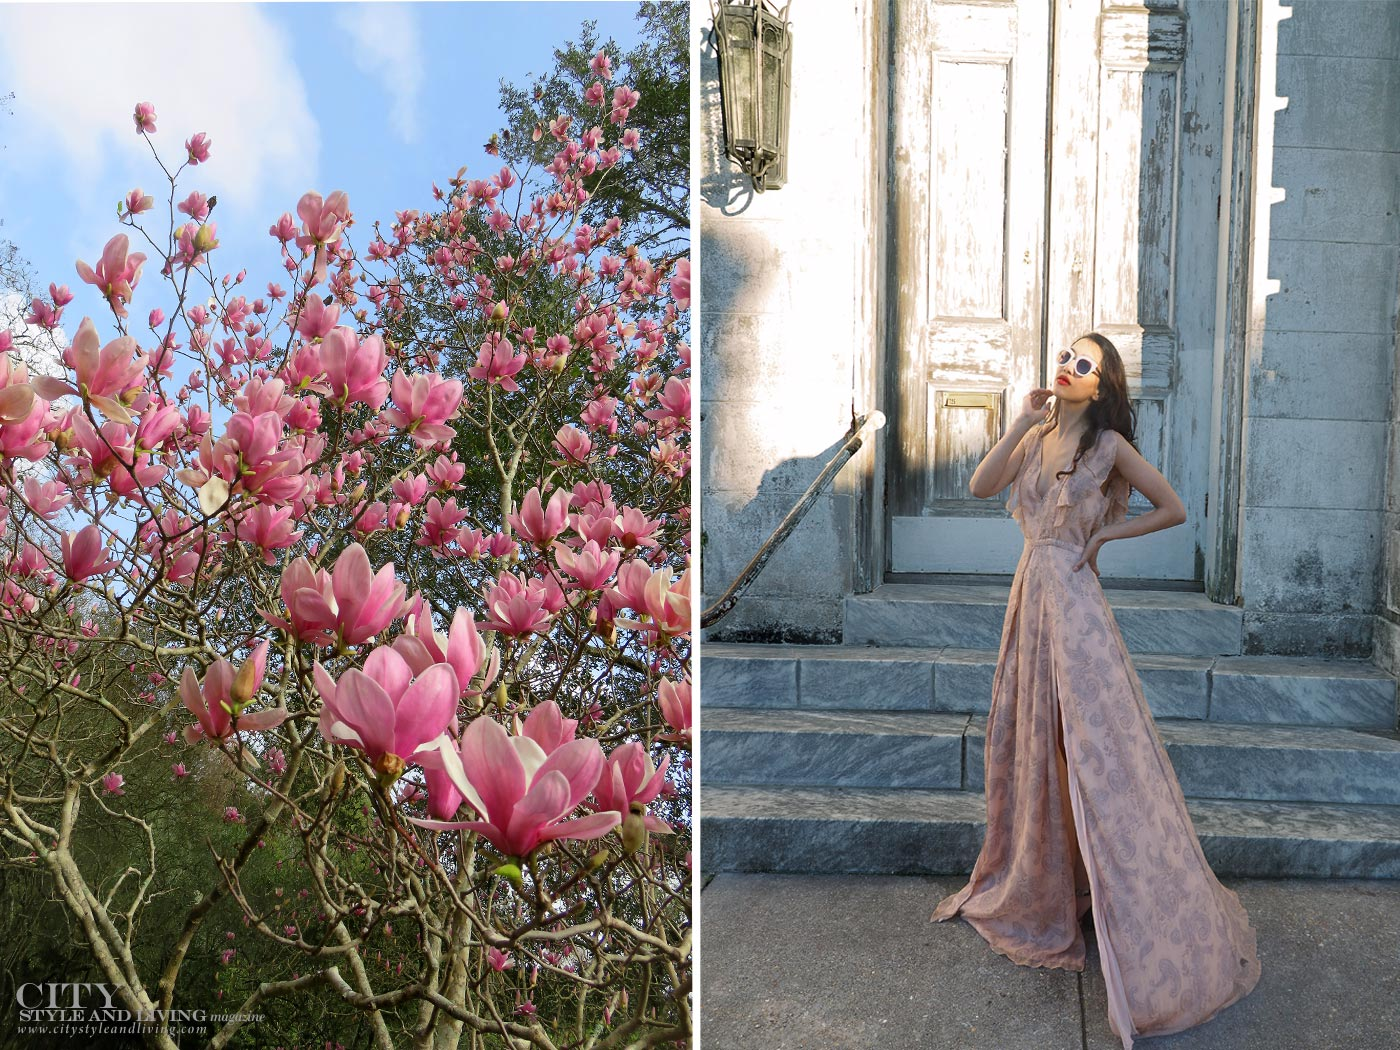 City style and living magazine The Editors Notebook style fashion blogger Shivana Maharaj new orleans jetset diaries marigny opera house romantic jetset diaries dress and magnolia blooms